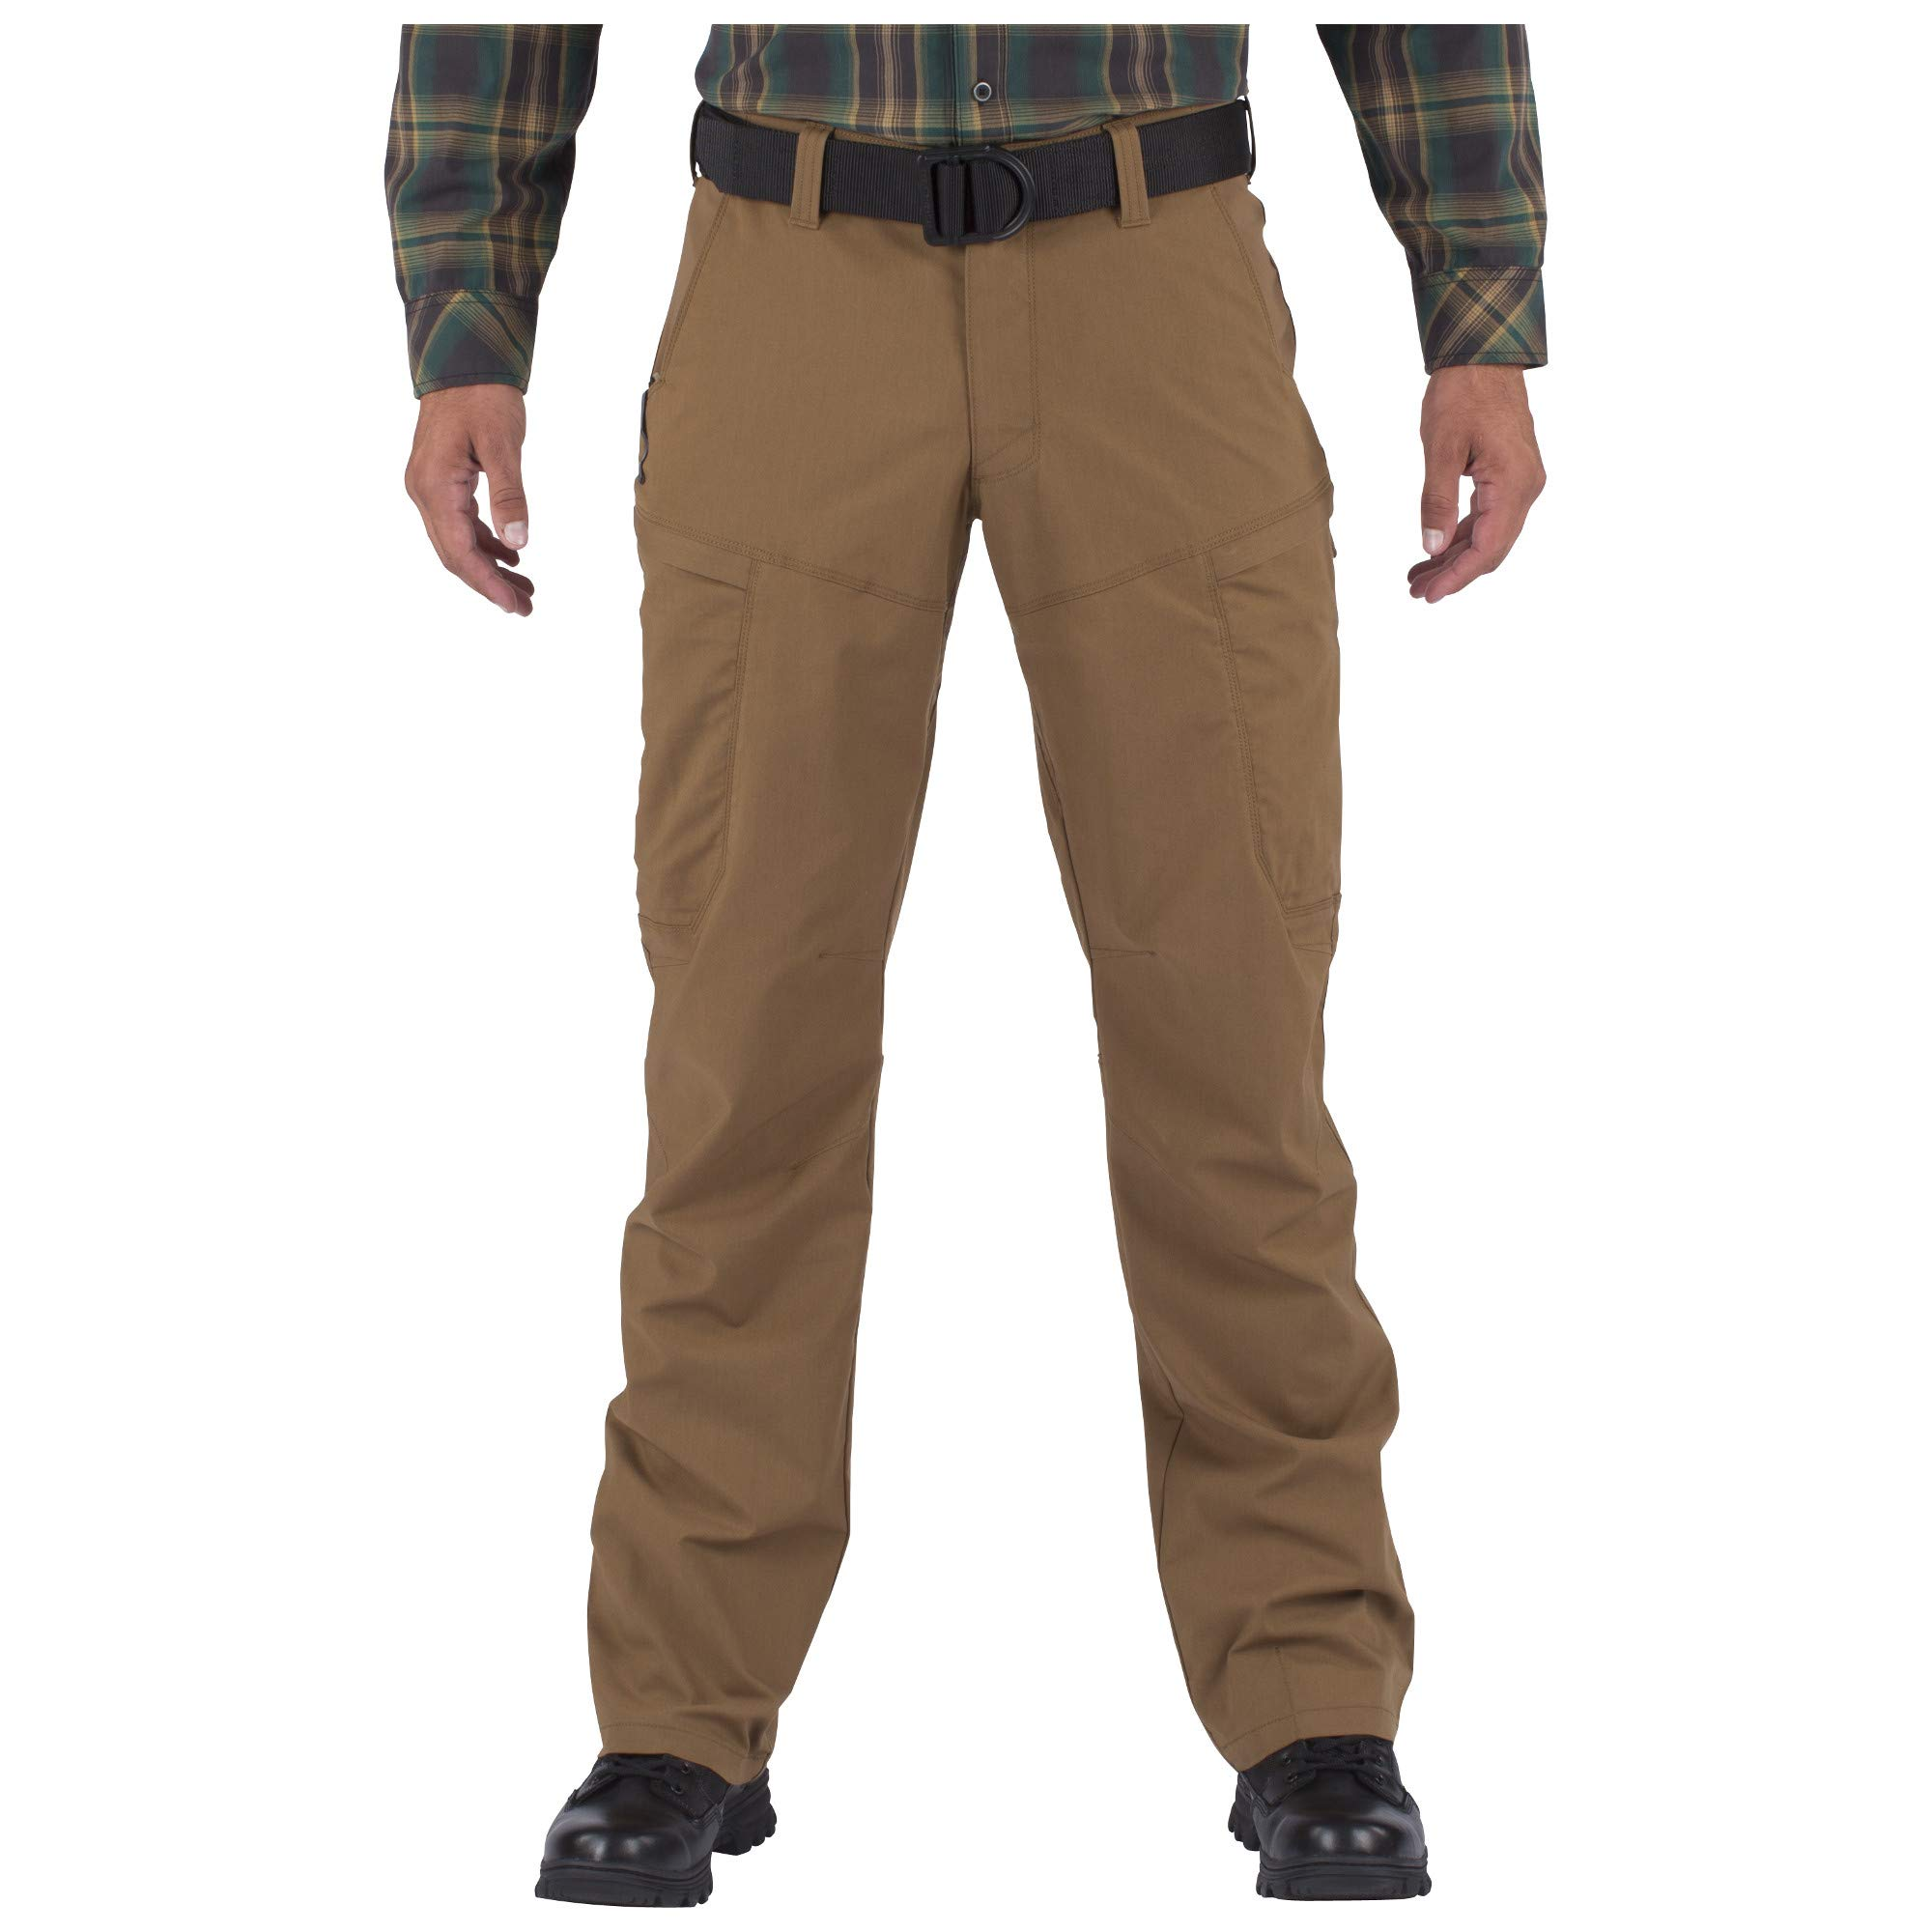 5.11 Men's APEX EDC Stealth Cargo Pocket Tactical Pant Style 74434, Battle Brown, 30W x 34L by 5.11